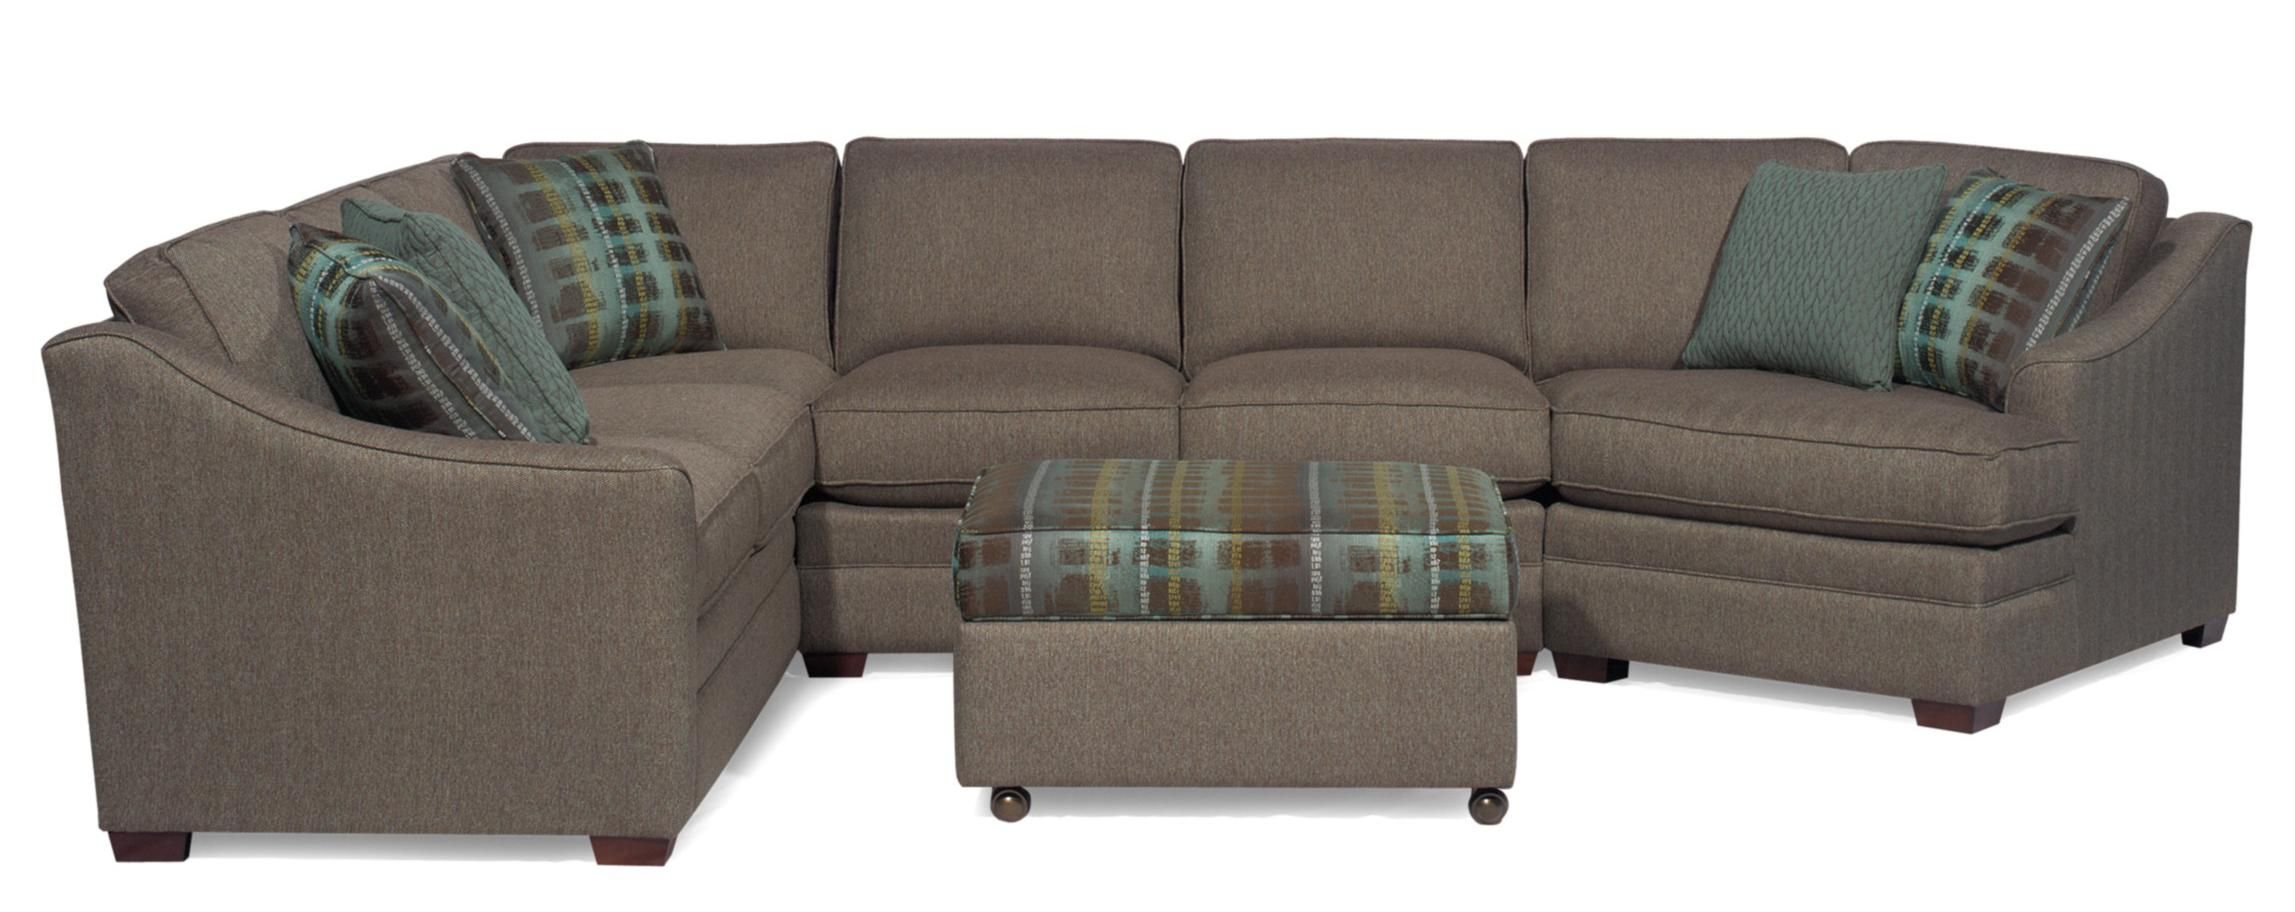 Astonishing Craftmaster Sectional F9431 Sect We Saw This At Scheels Pabps2019 Chair Design Images Pabps2019Com